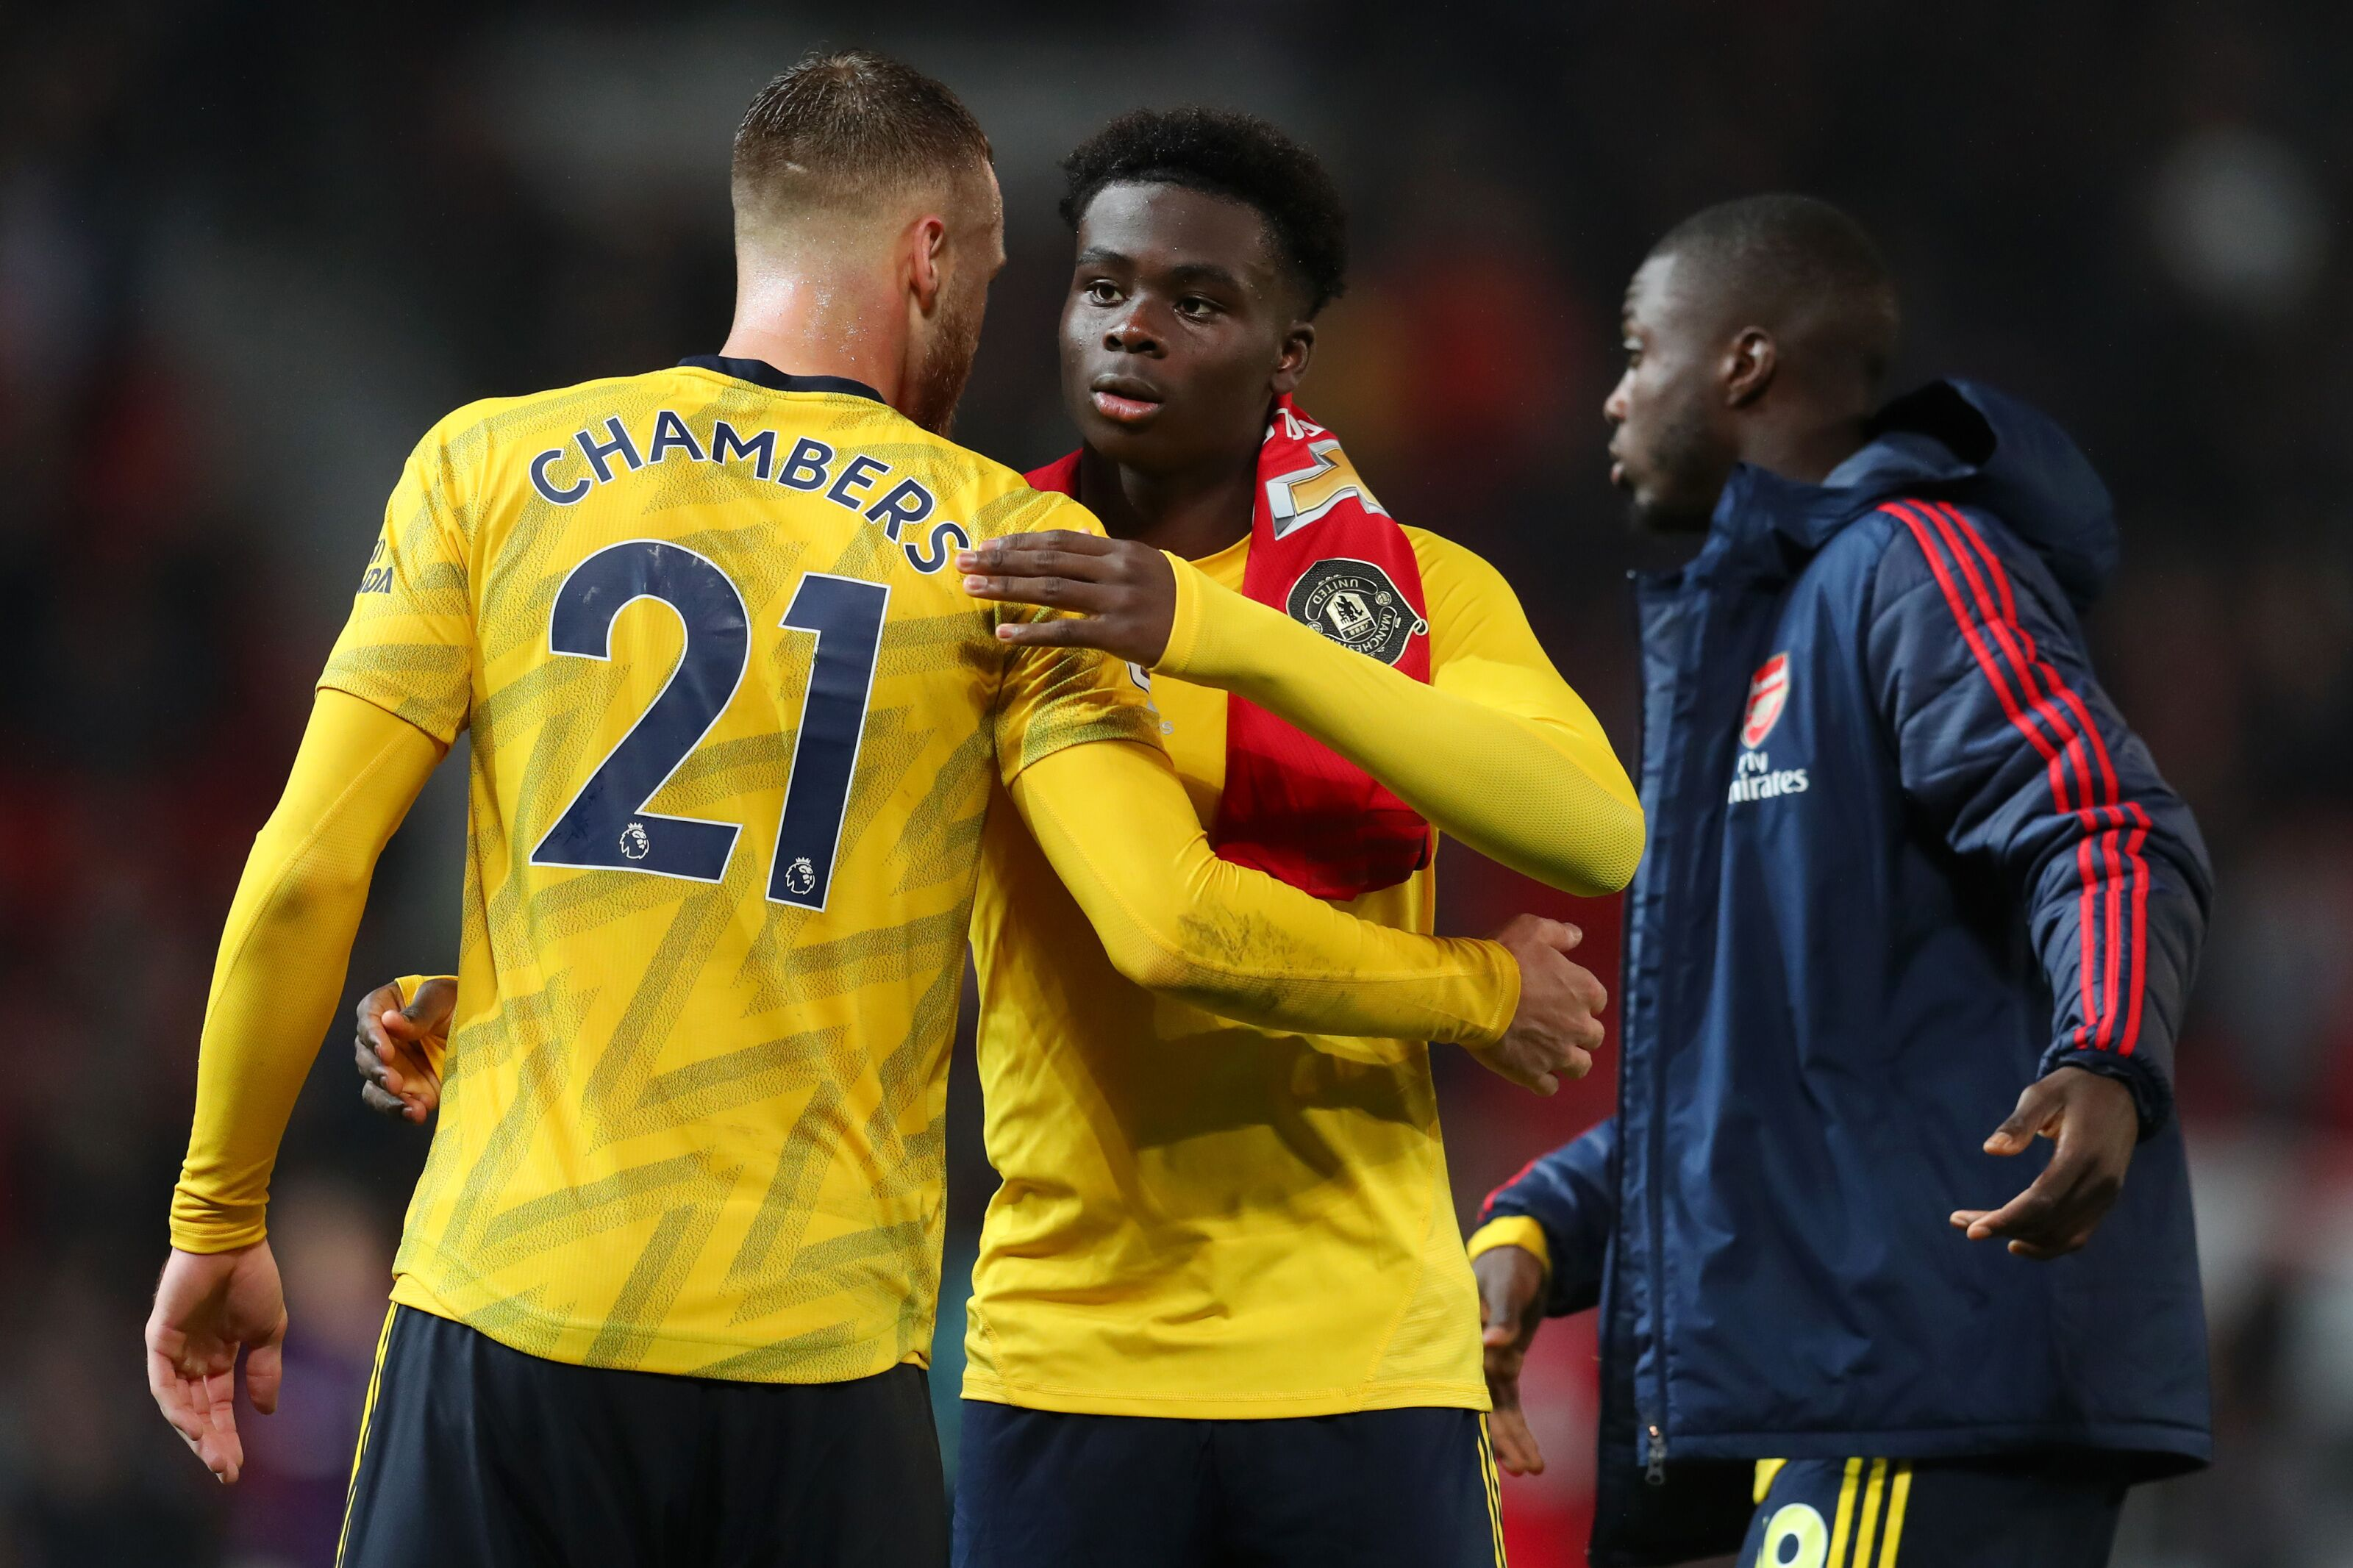 Arsenal: Youngsters can and should carry the hope of the club